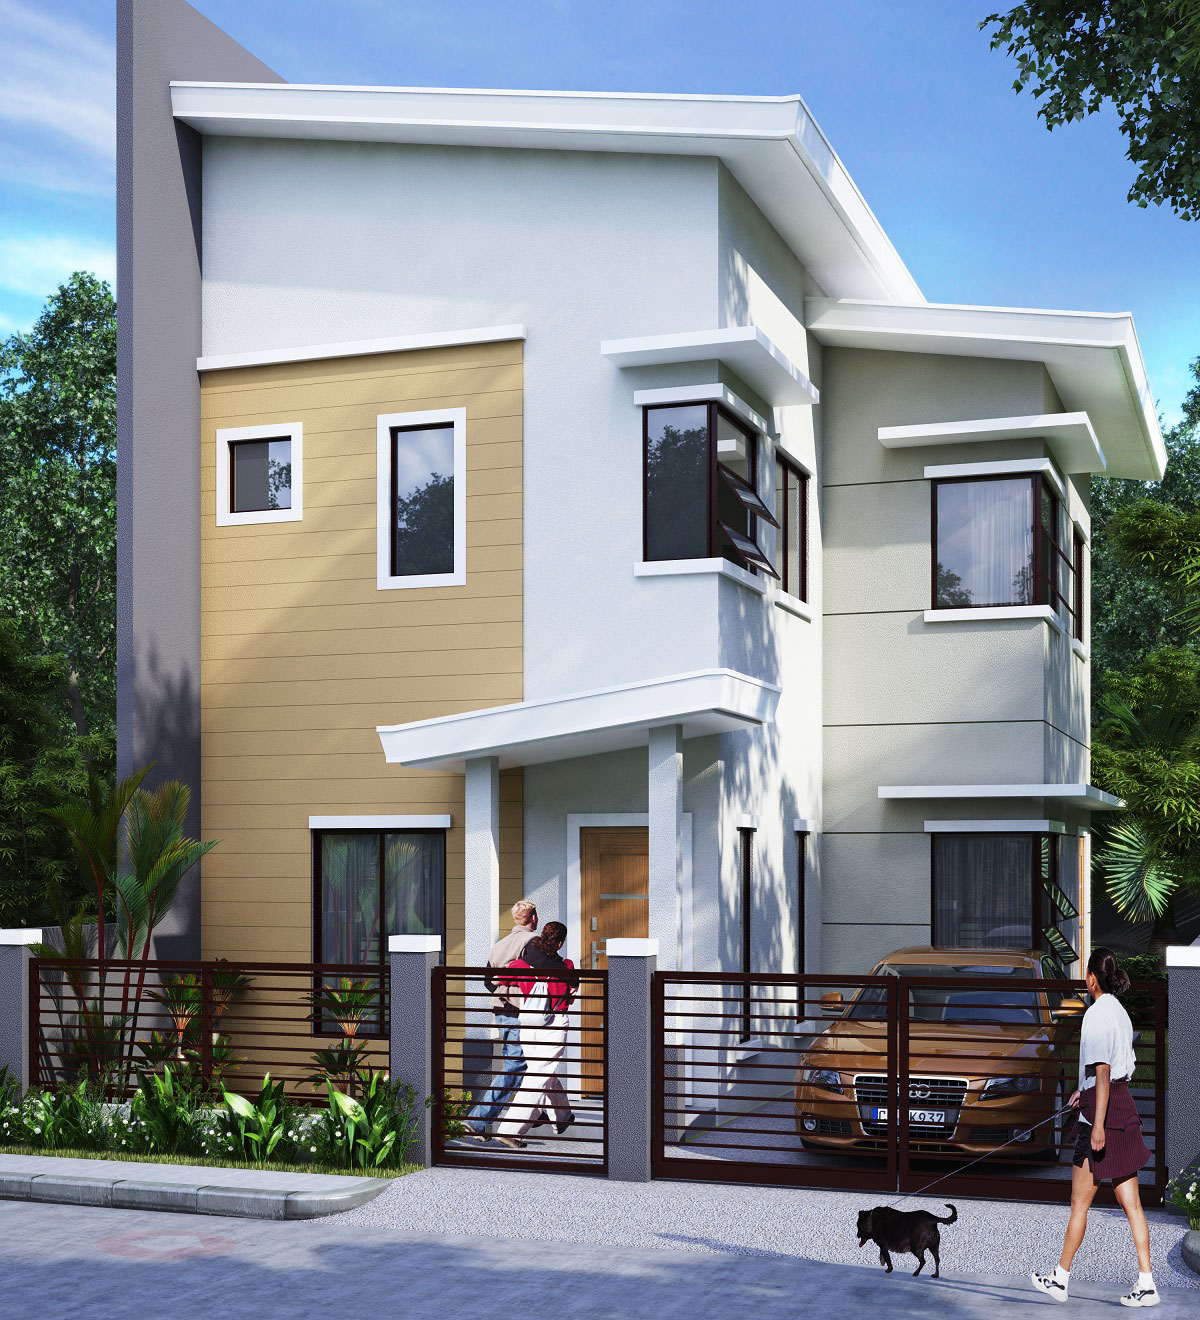 Granville III Subdivision: Economic And Socialized Housing